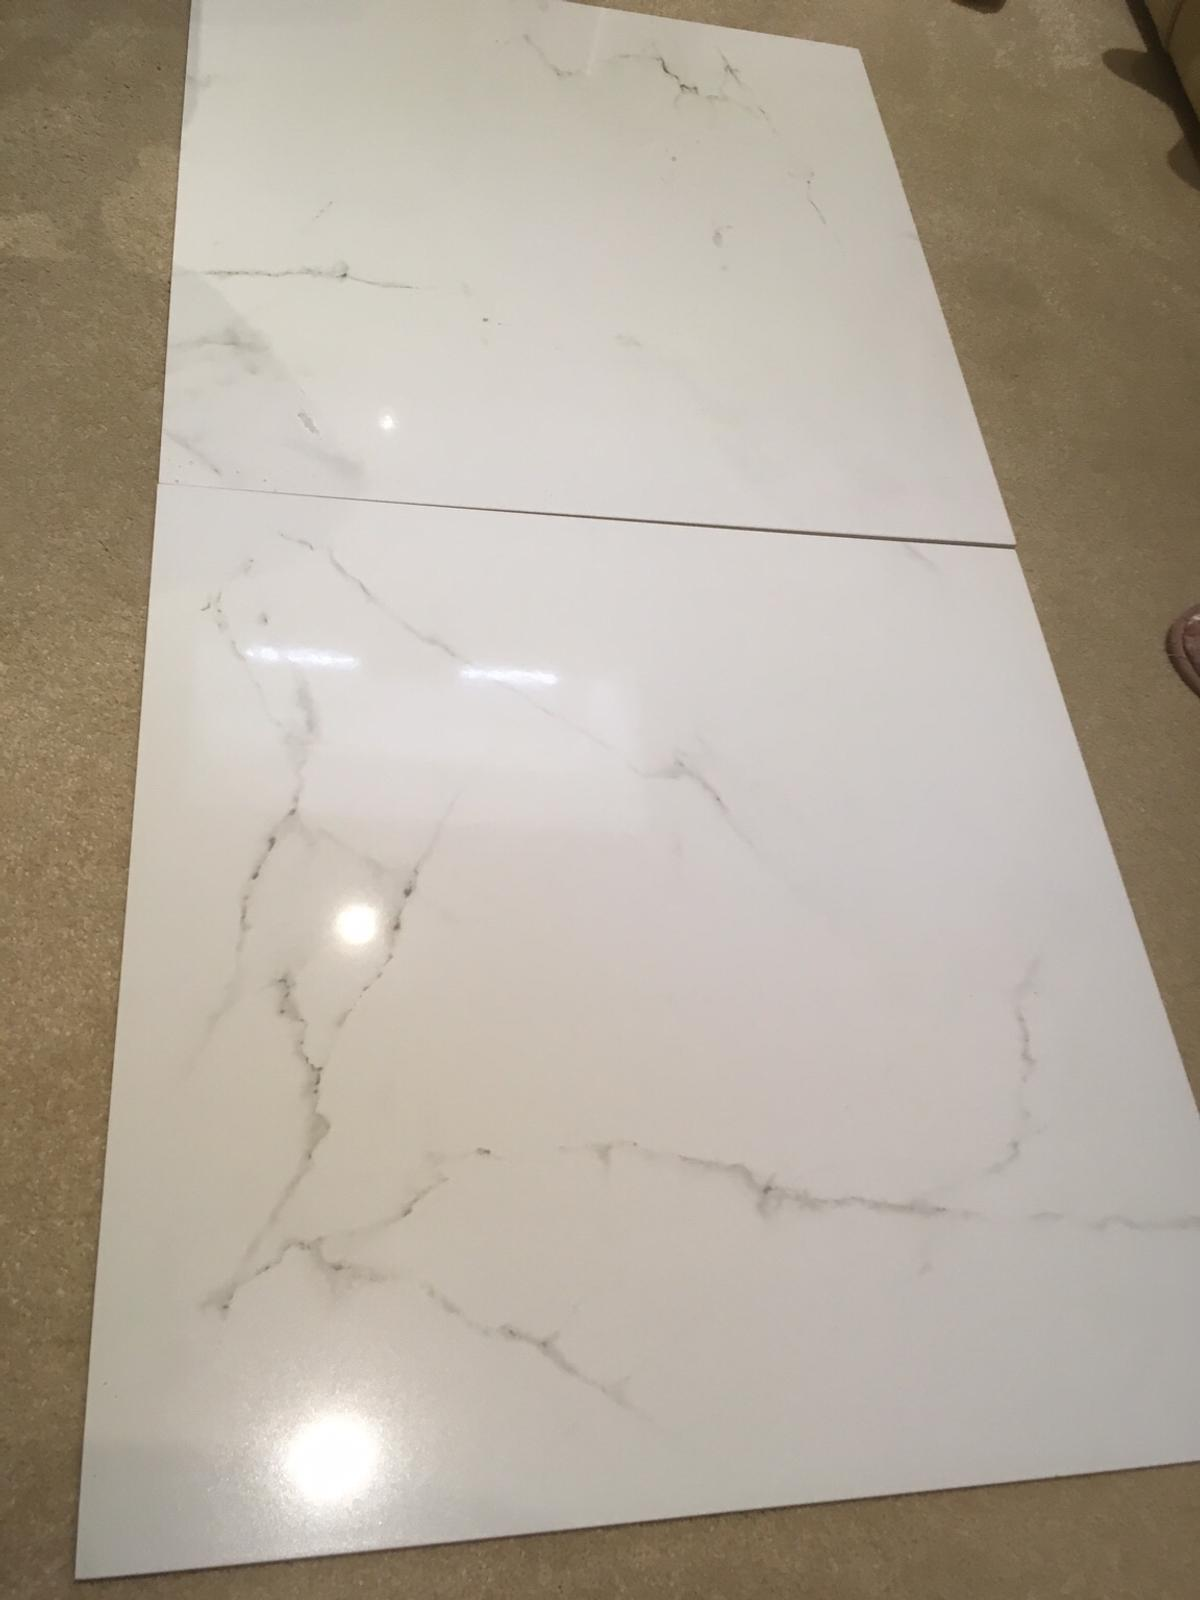 High quality Porcelanosa tiles in SK9 Chorley for £475 00